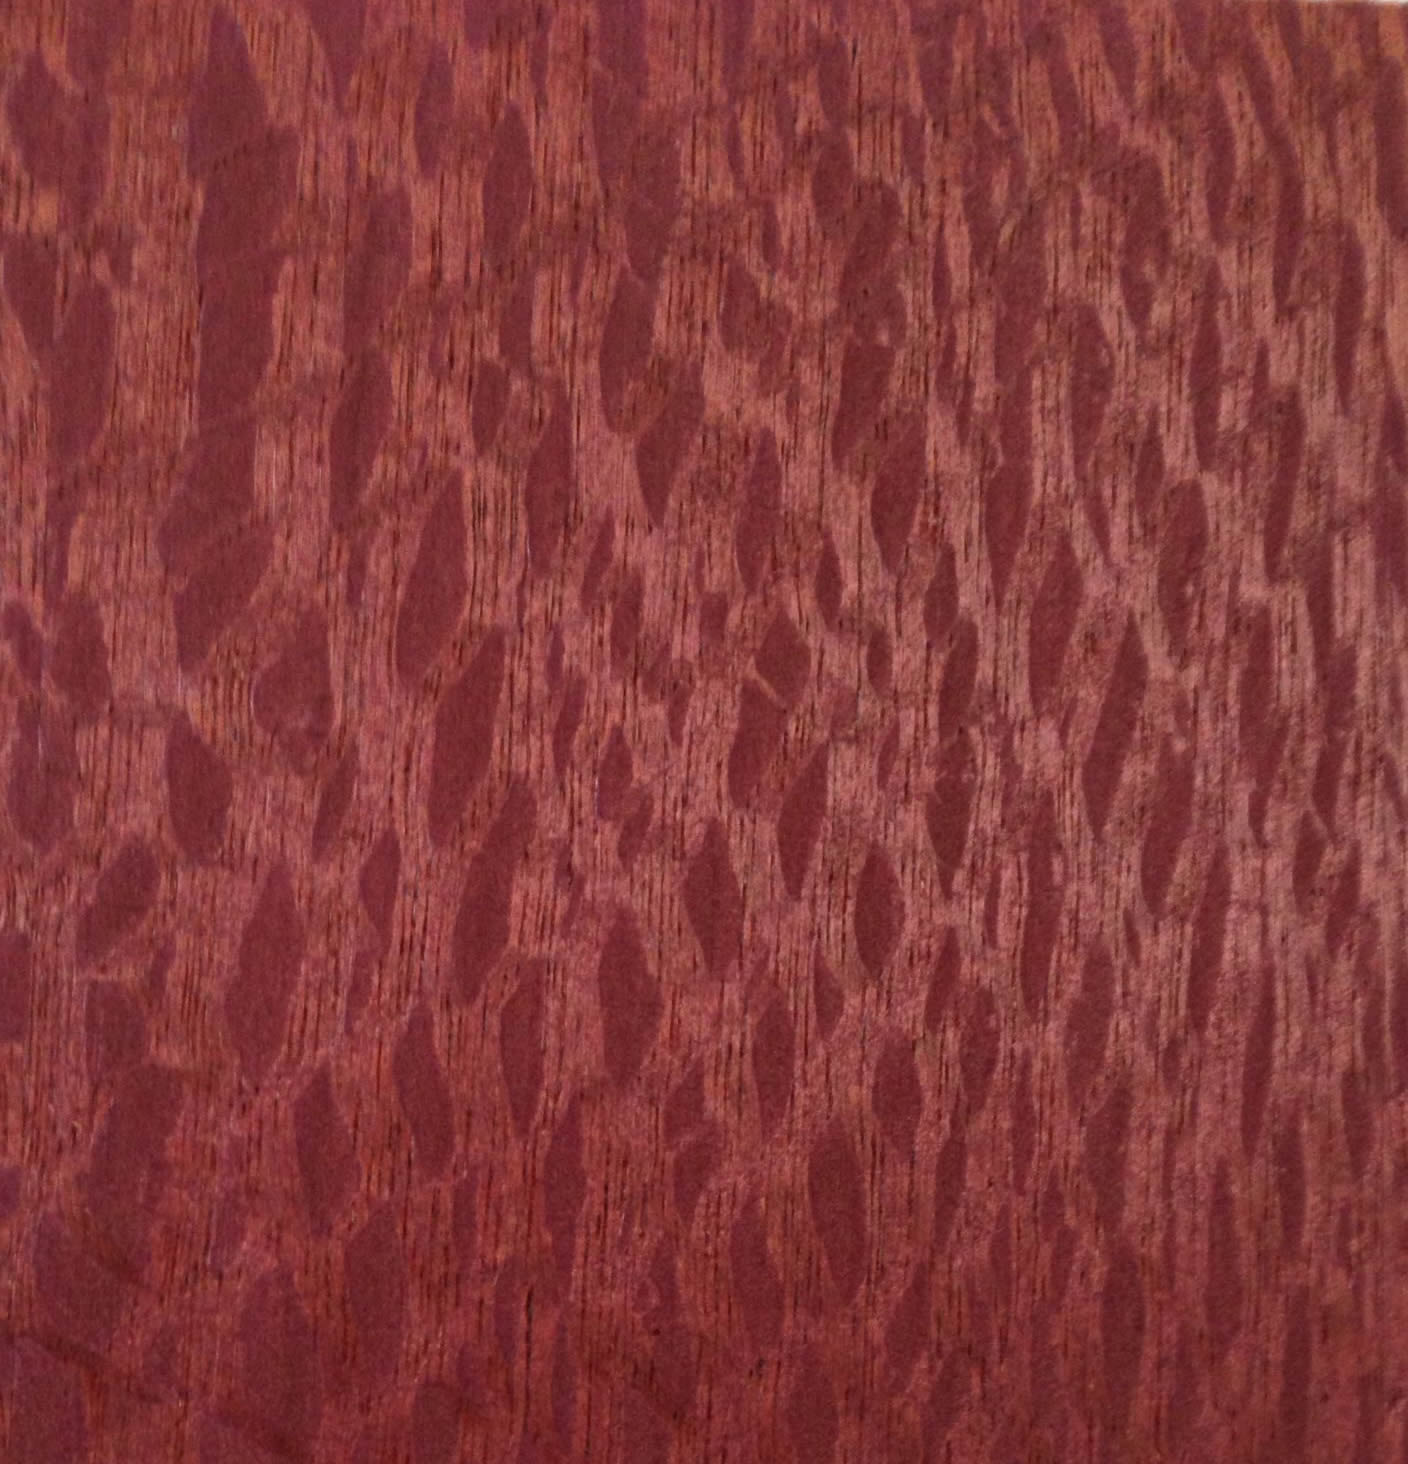 Lacewood QC Stained 120525